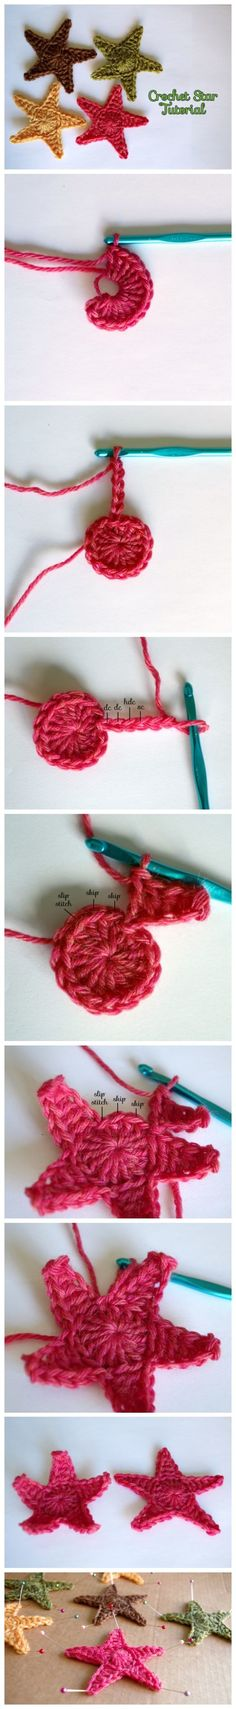 How to make a crochet star | DIY